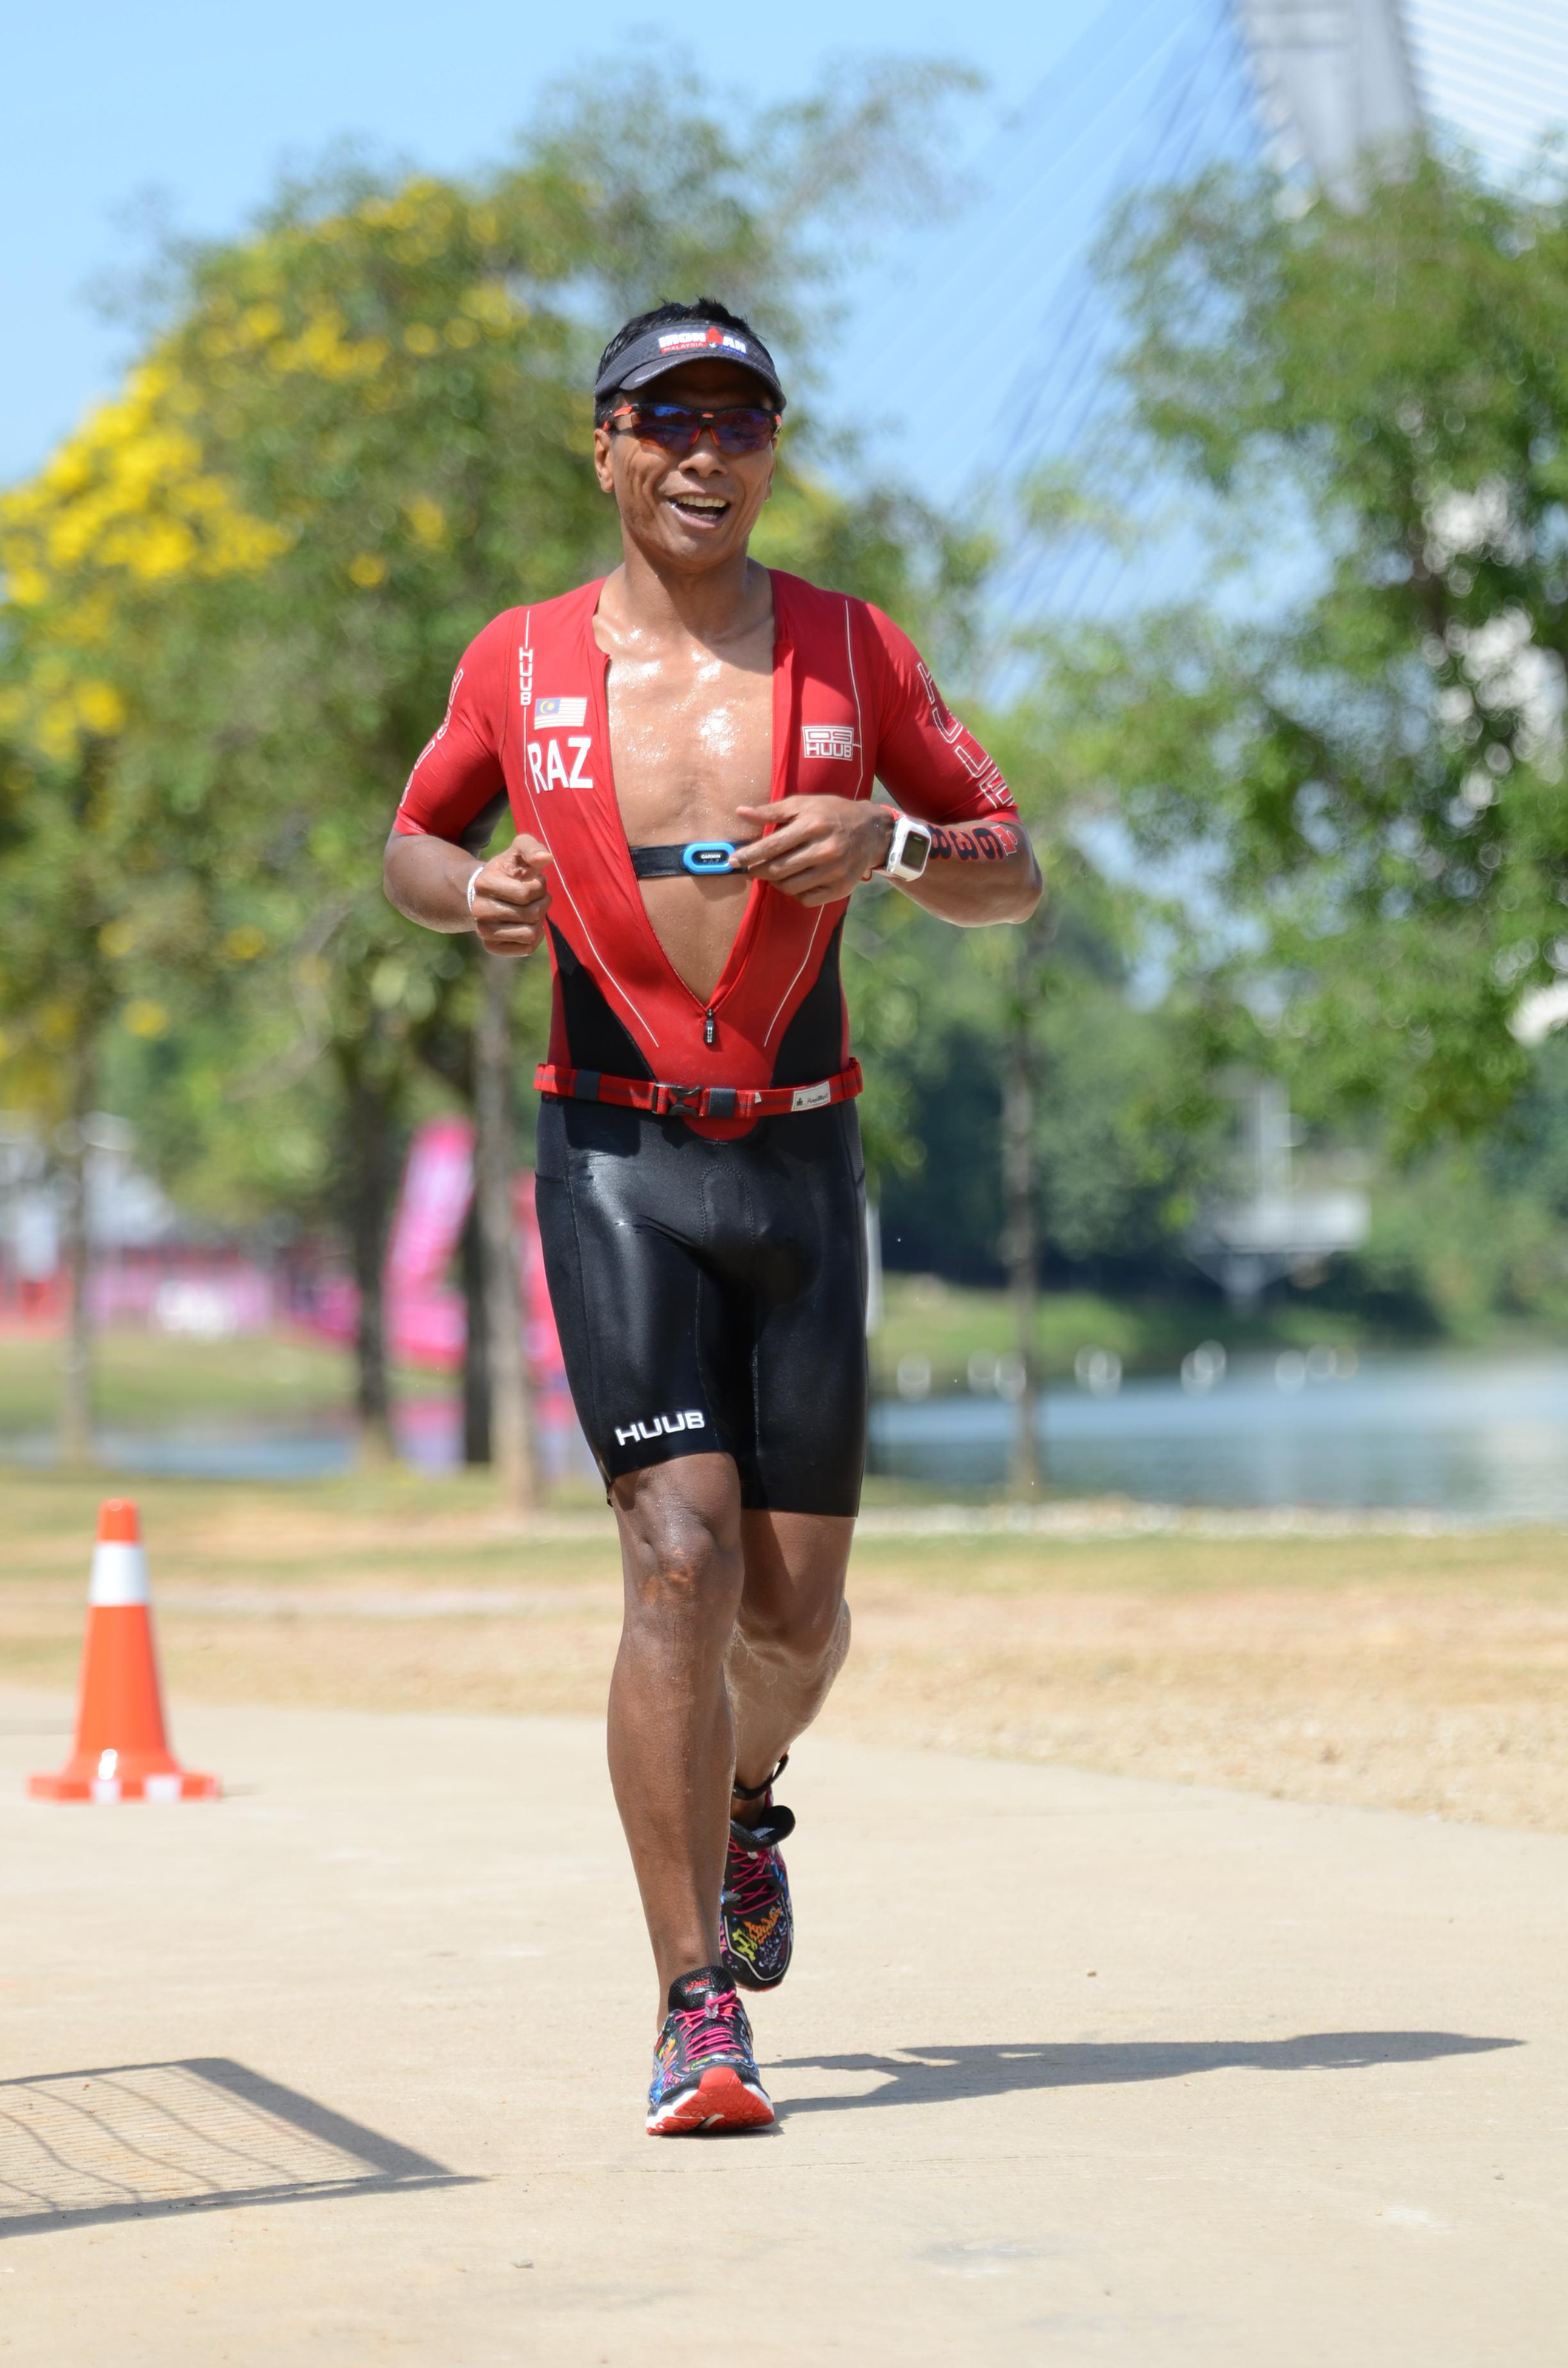 I like to train with strong people as it will make you push and work harder - Dato' Razlan. (Finisher Pix)